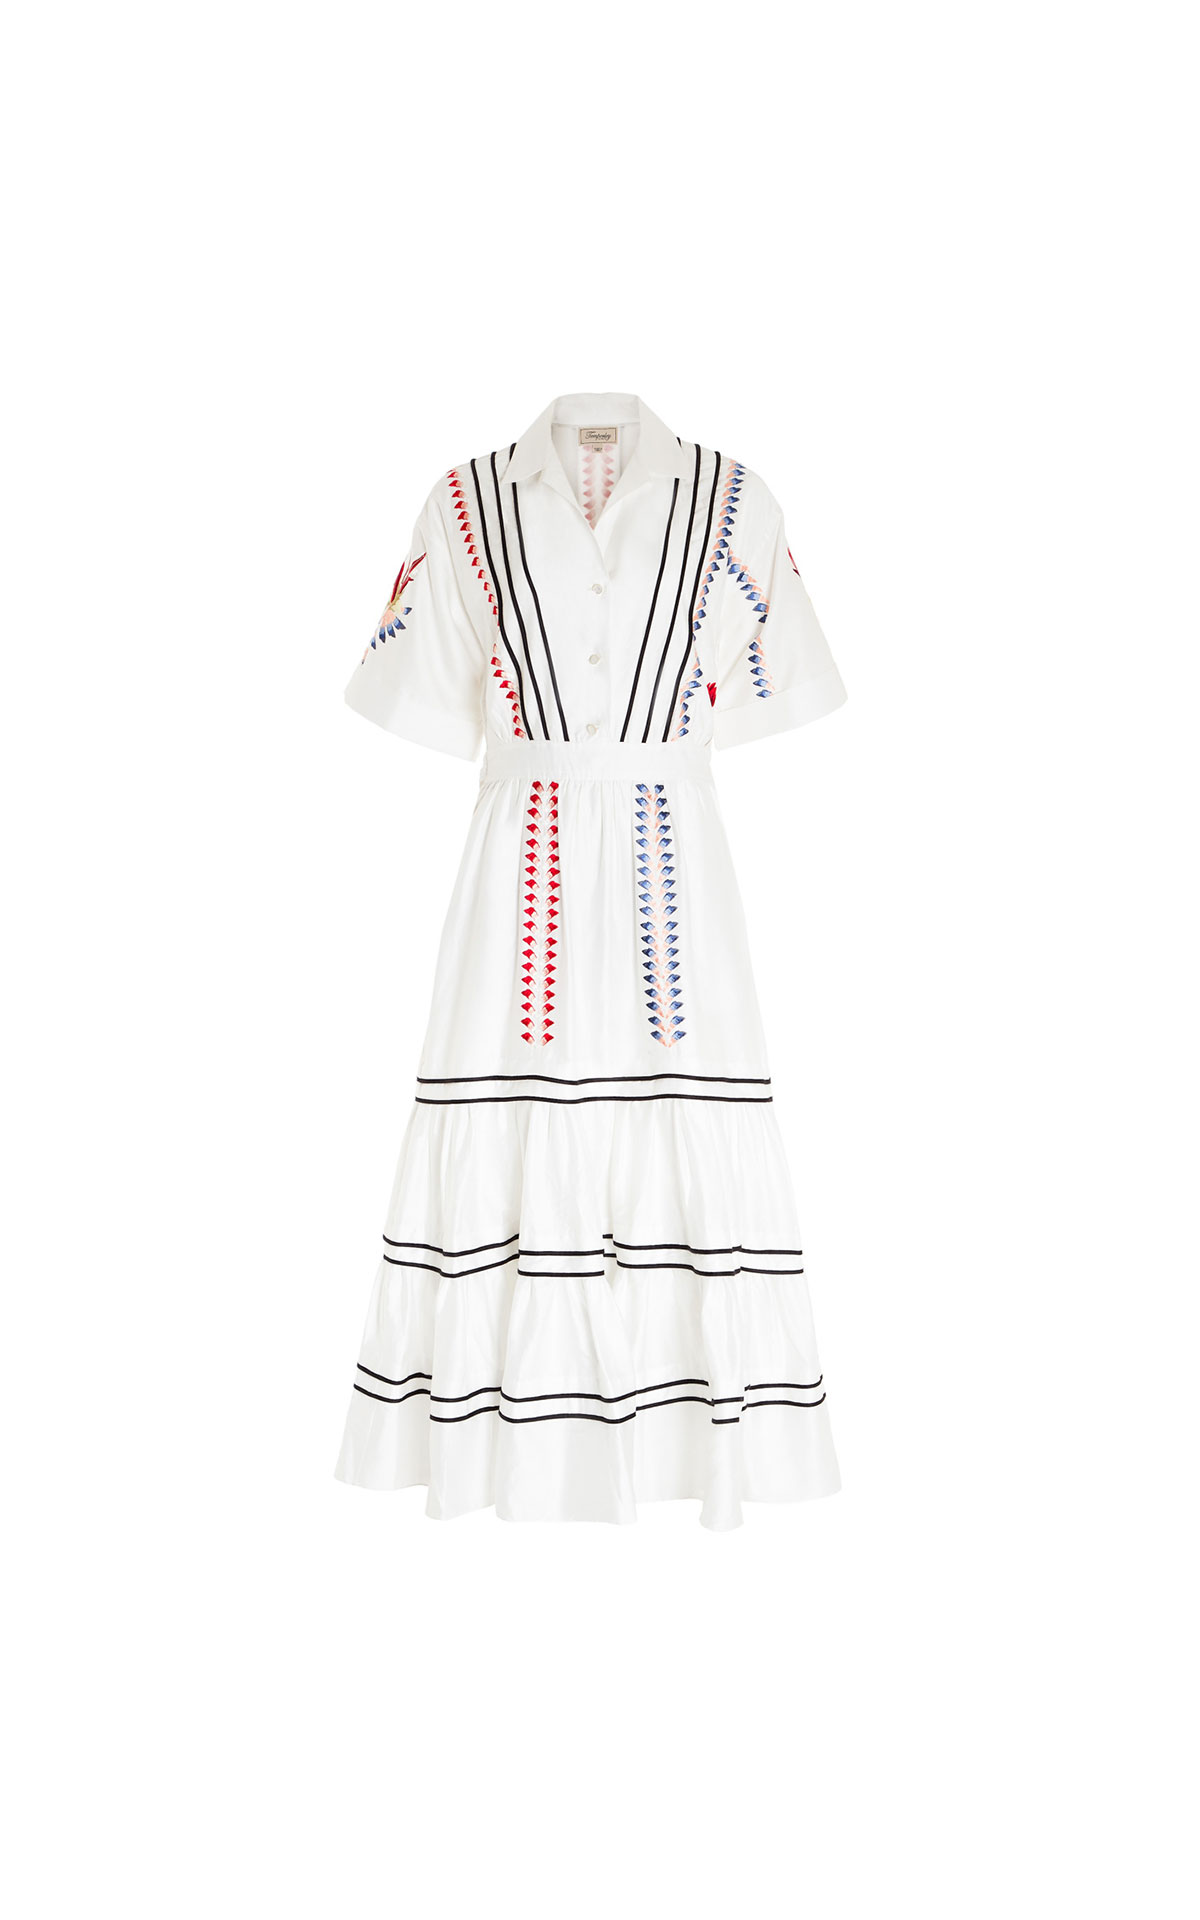 Temperley London Cherry blossom dress from Bicester Village